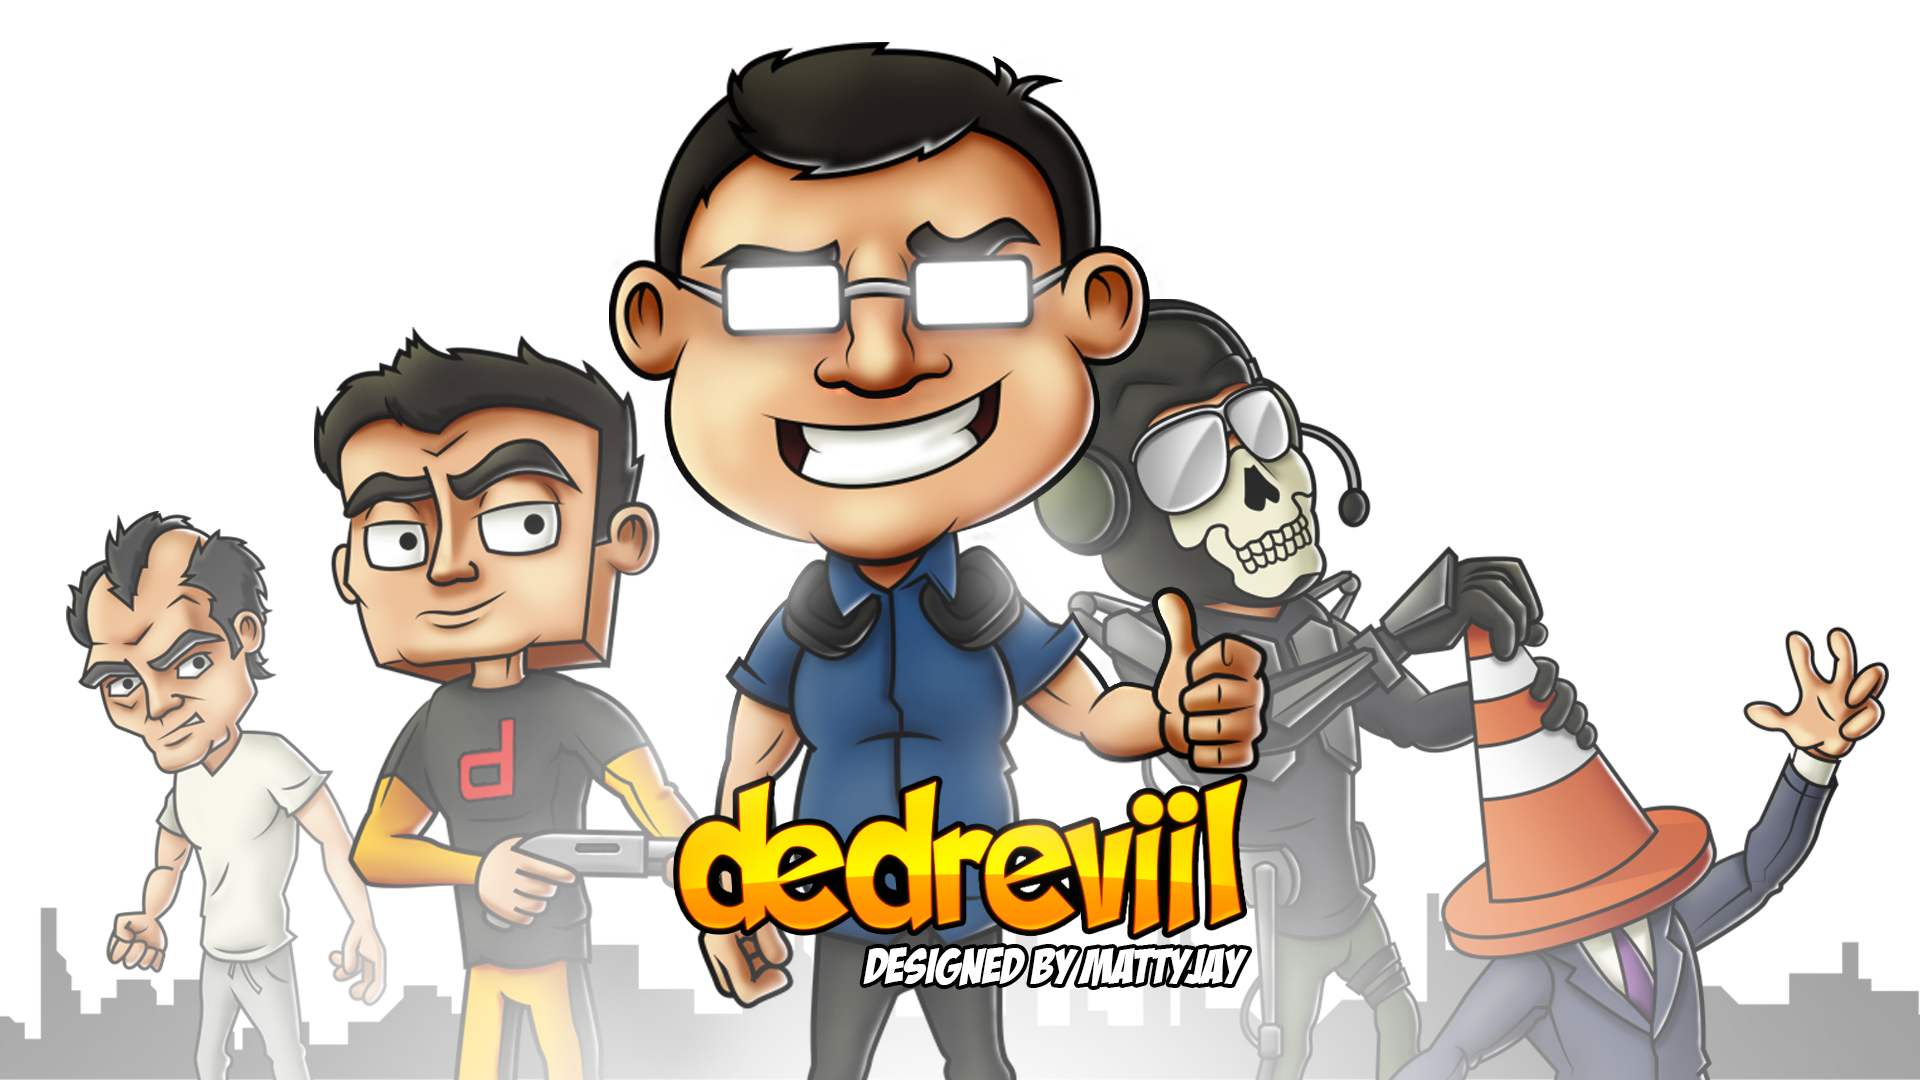 Dedreviil Character Commission